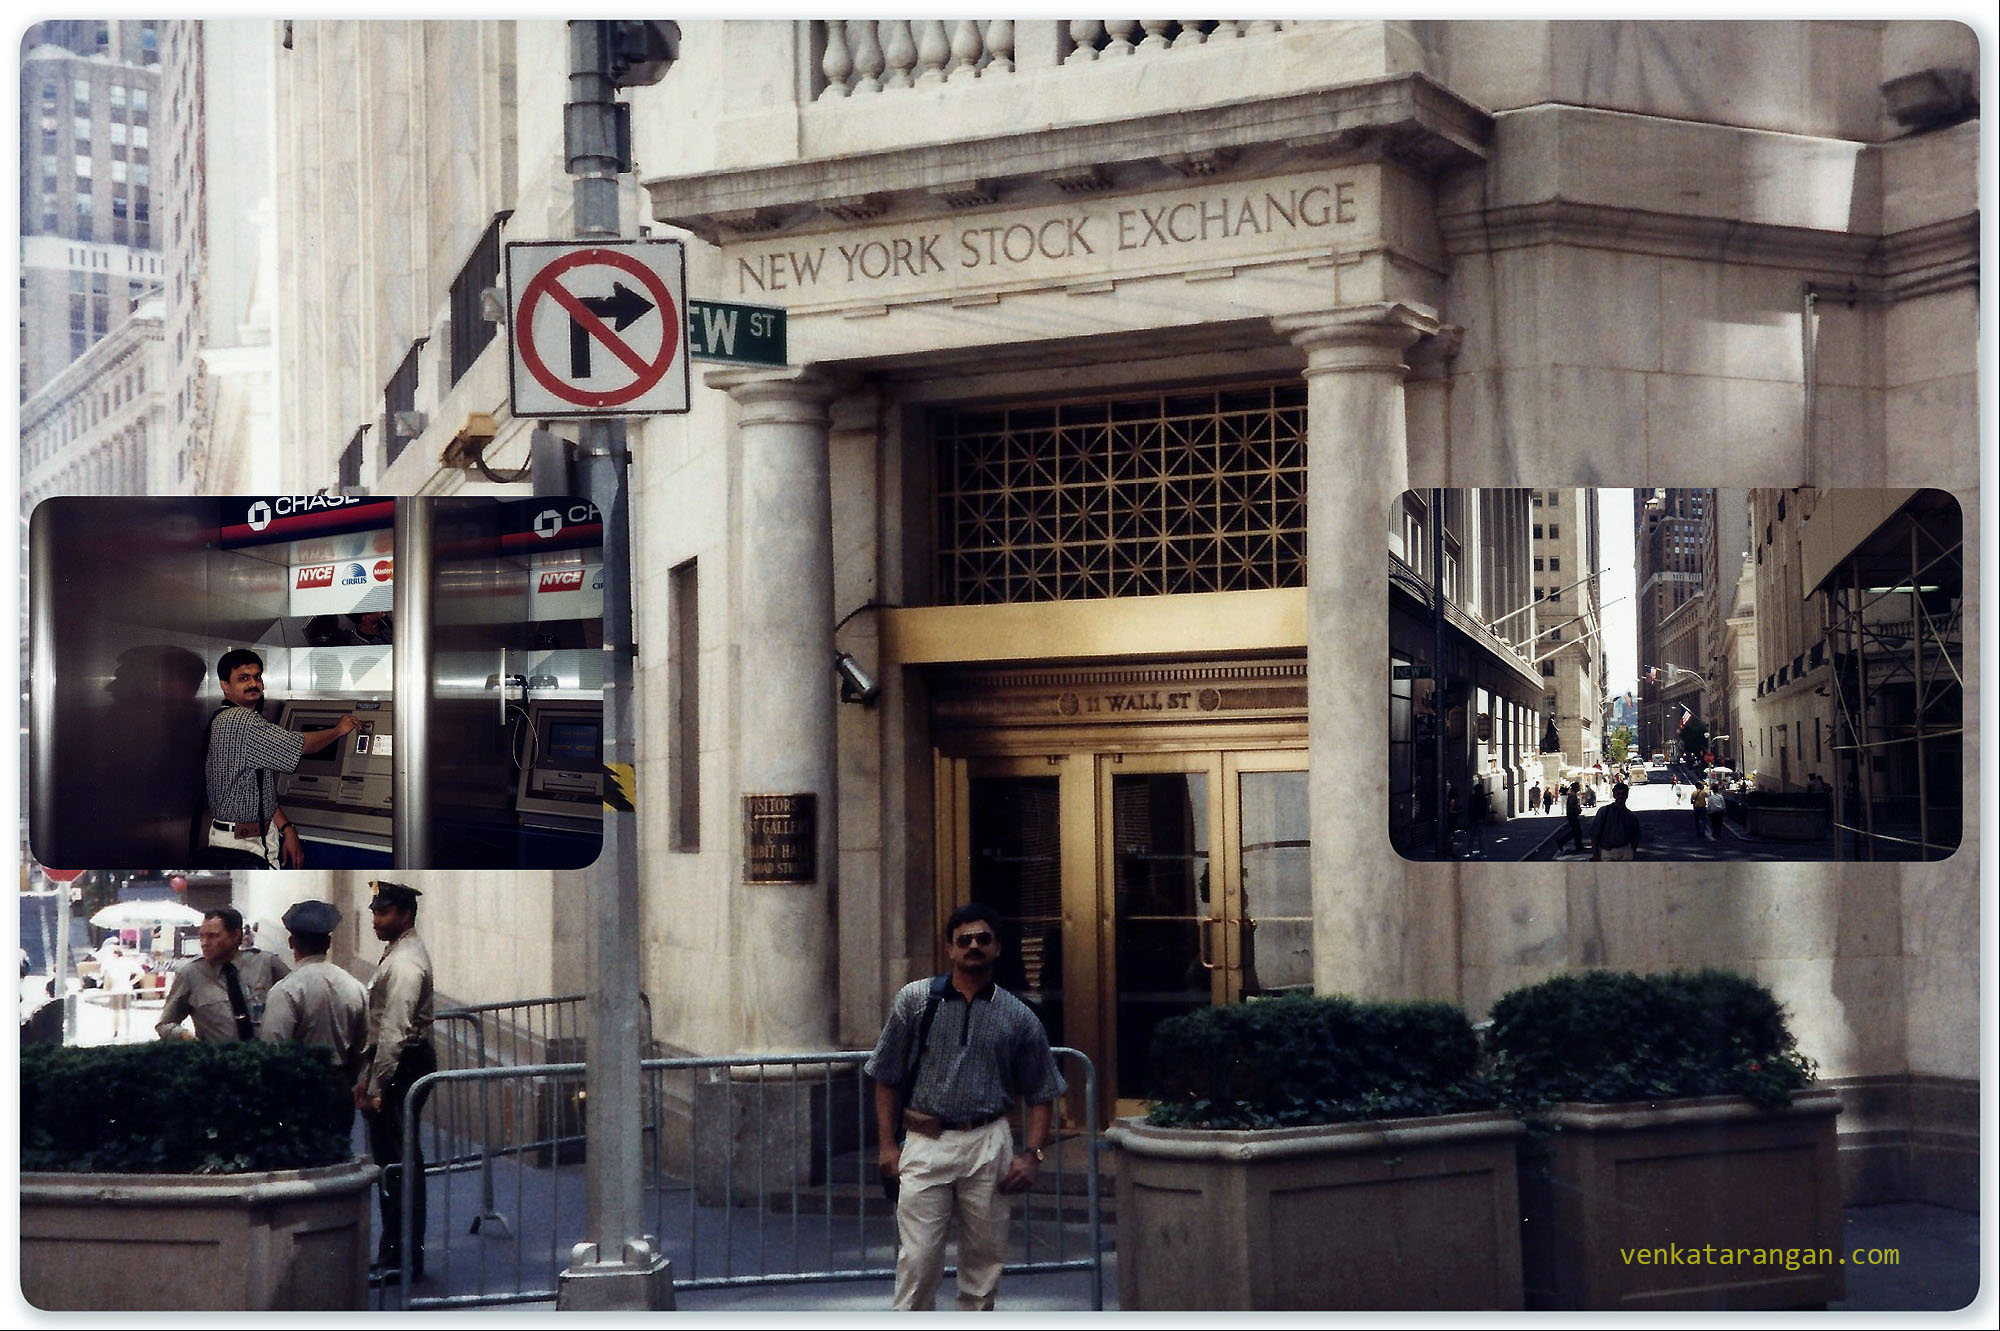 The view of New York Stock Exchange in 1999. The first and only transaction I did in the Wall Street - of withdrawing money in an ATM